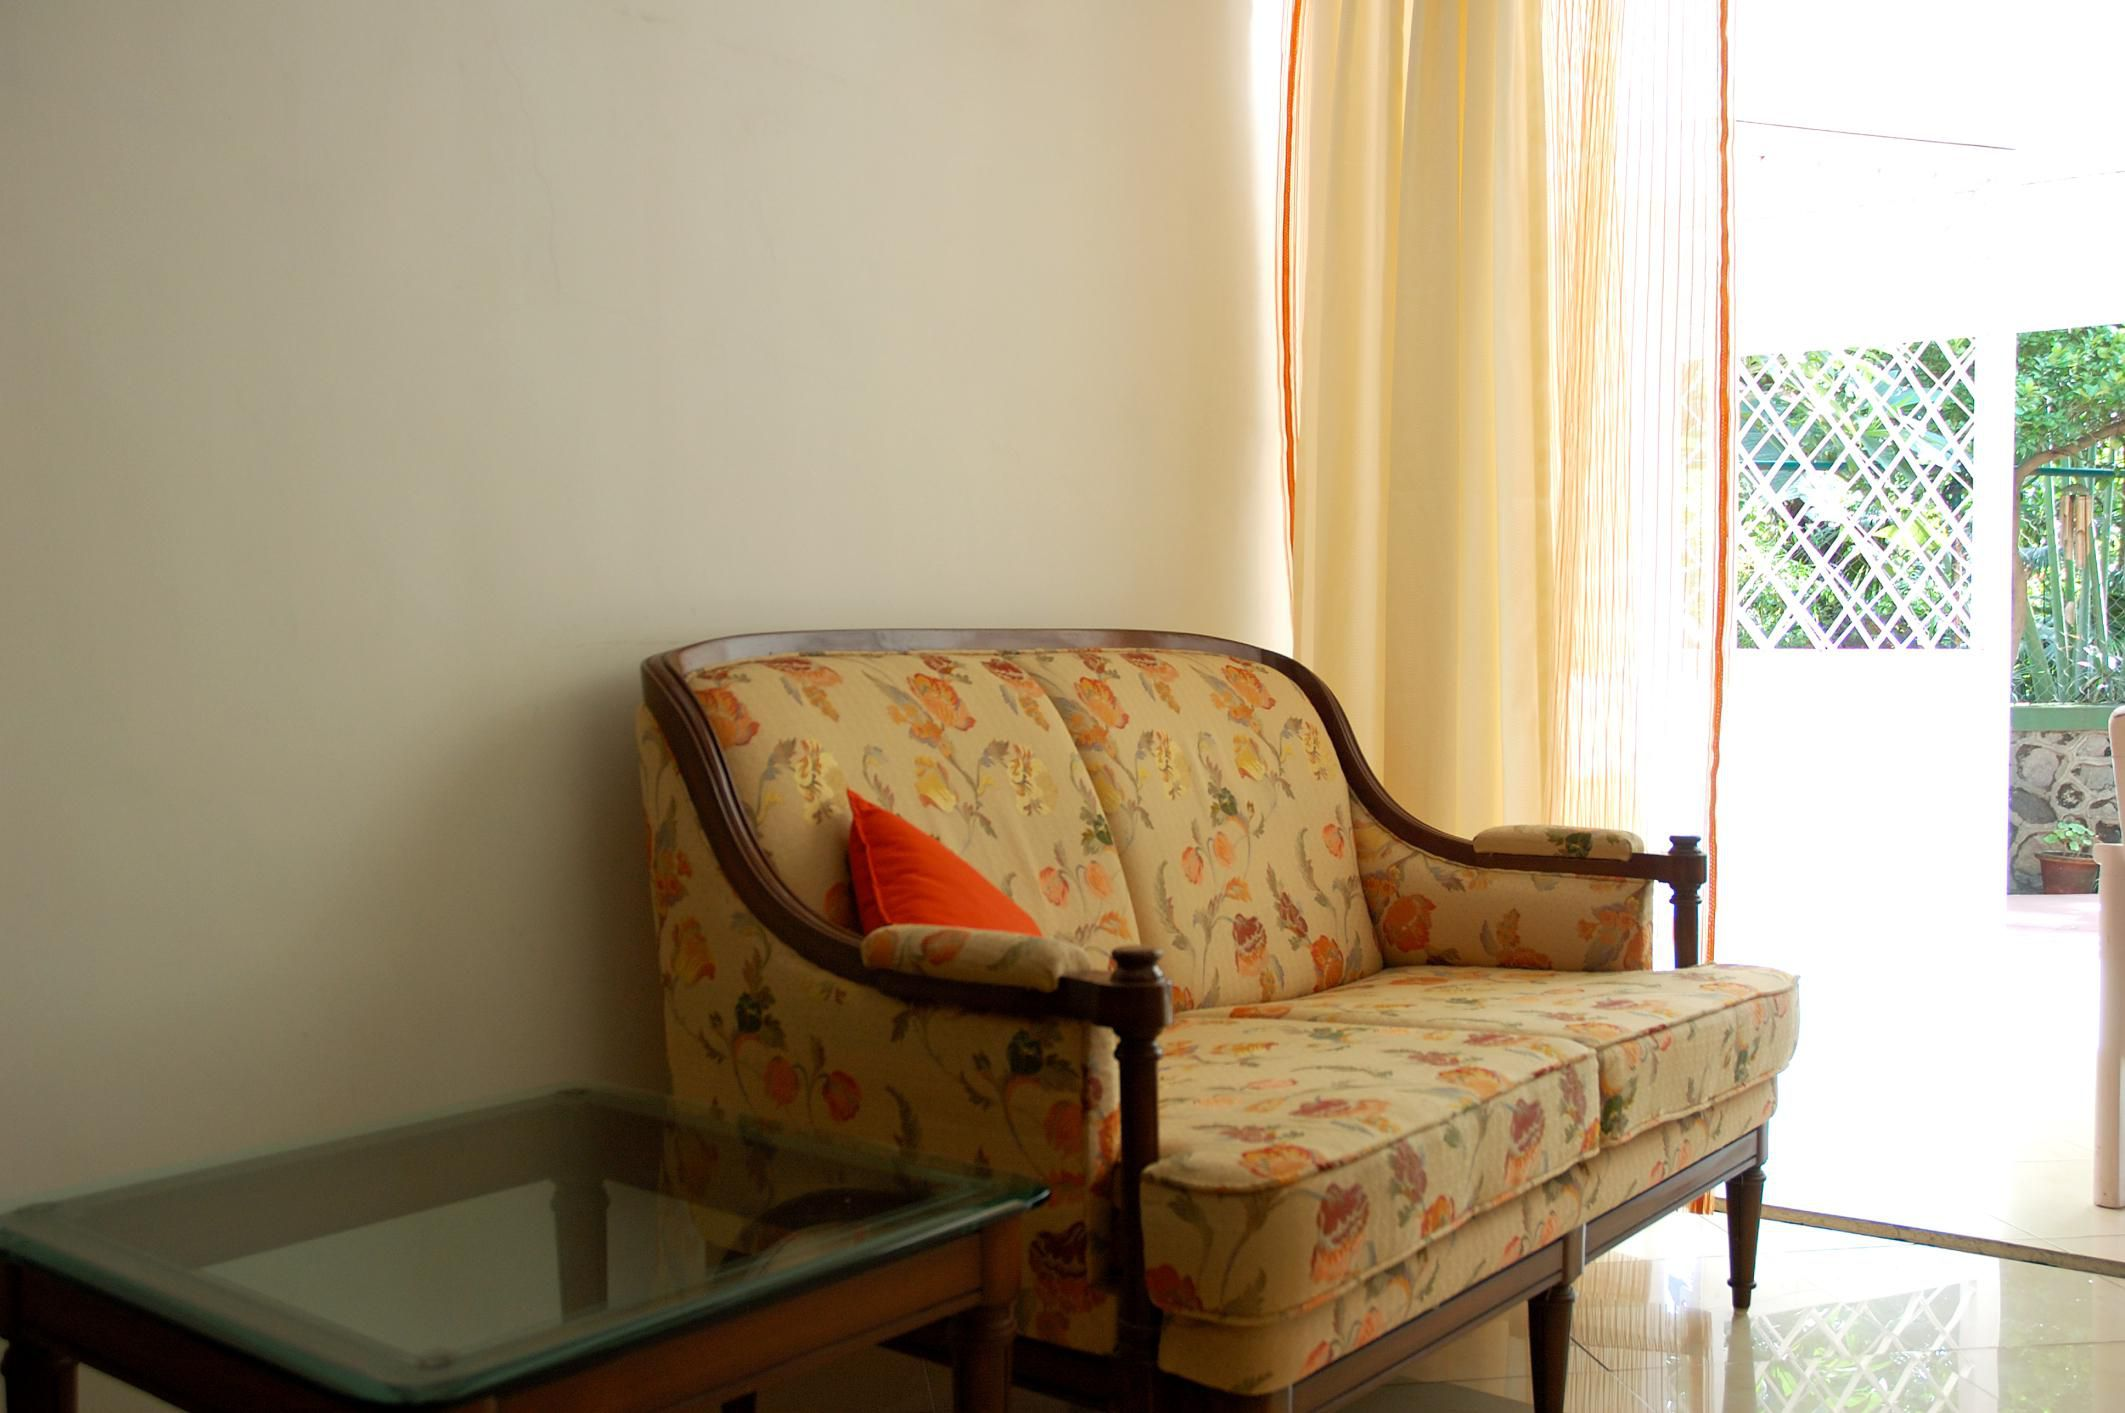 Pricing guidelines for used furniture